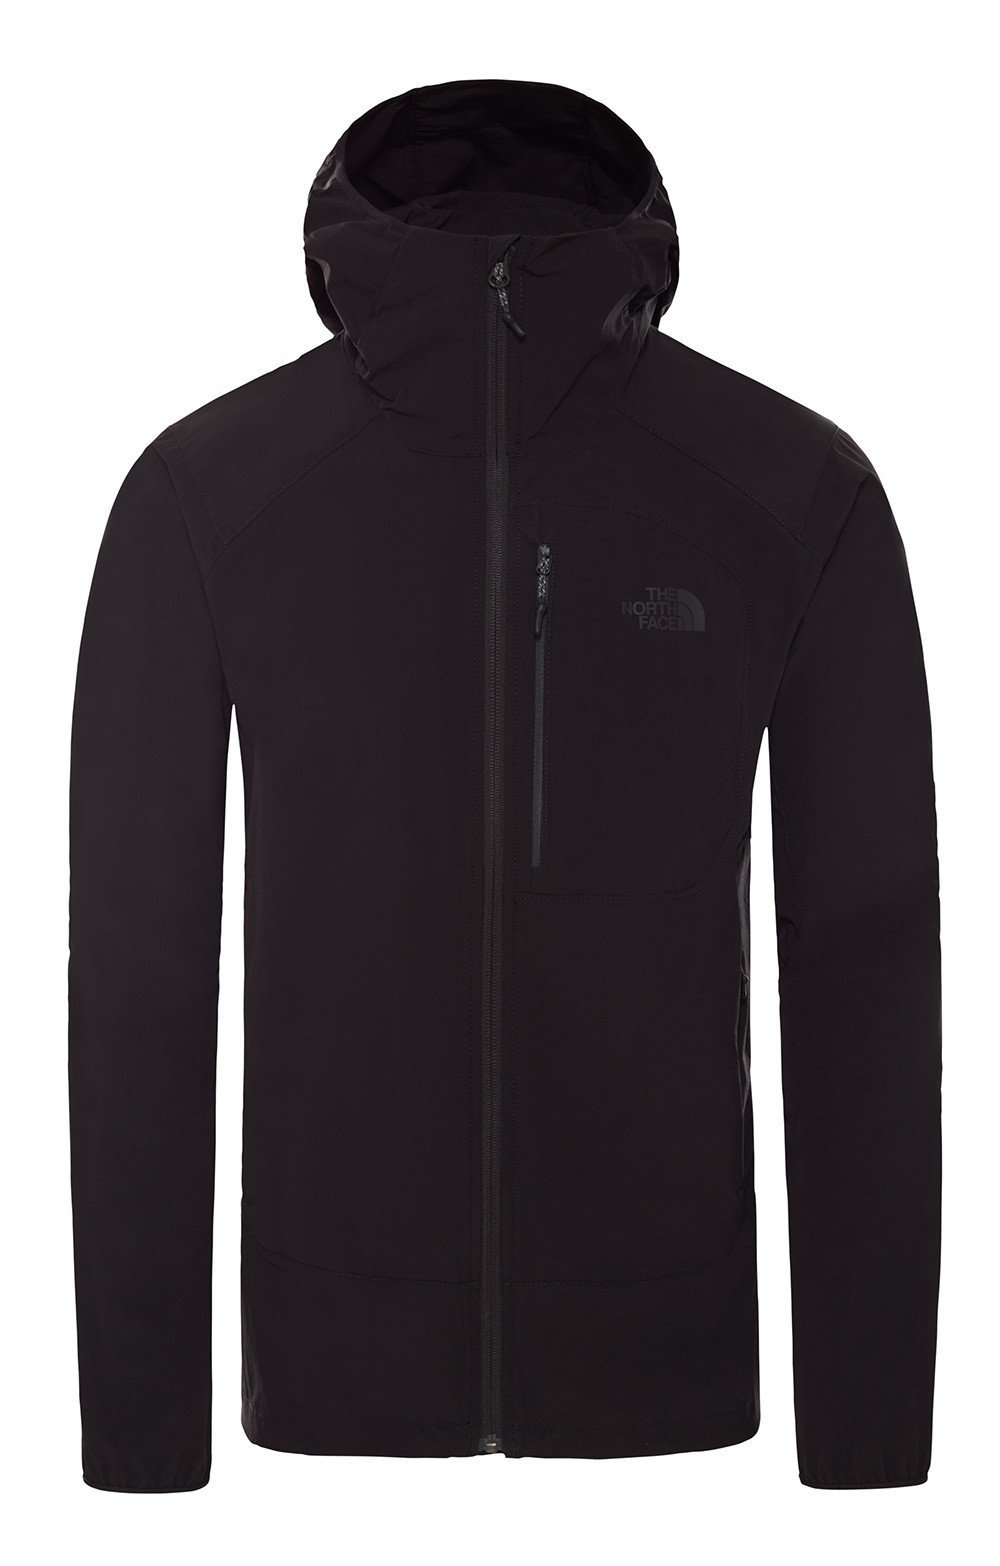 93a8e7a17 Men's The North Face North Dome Stretch Wind Jacket